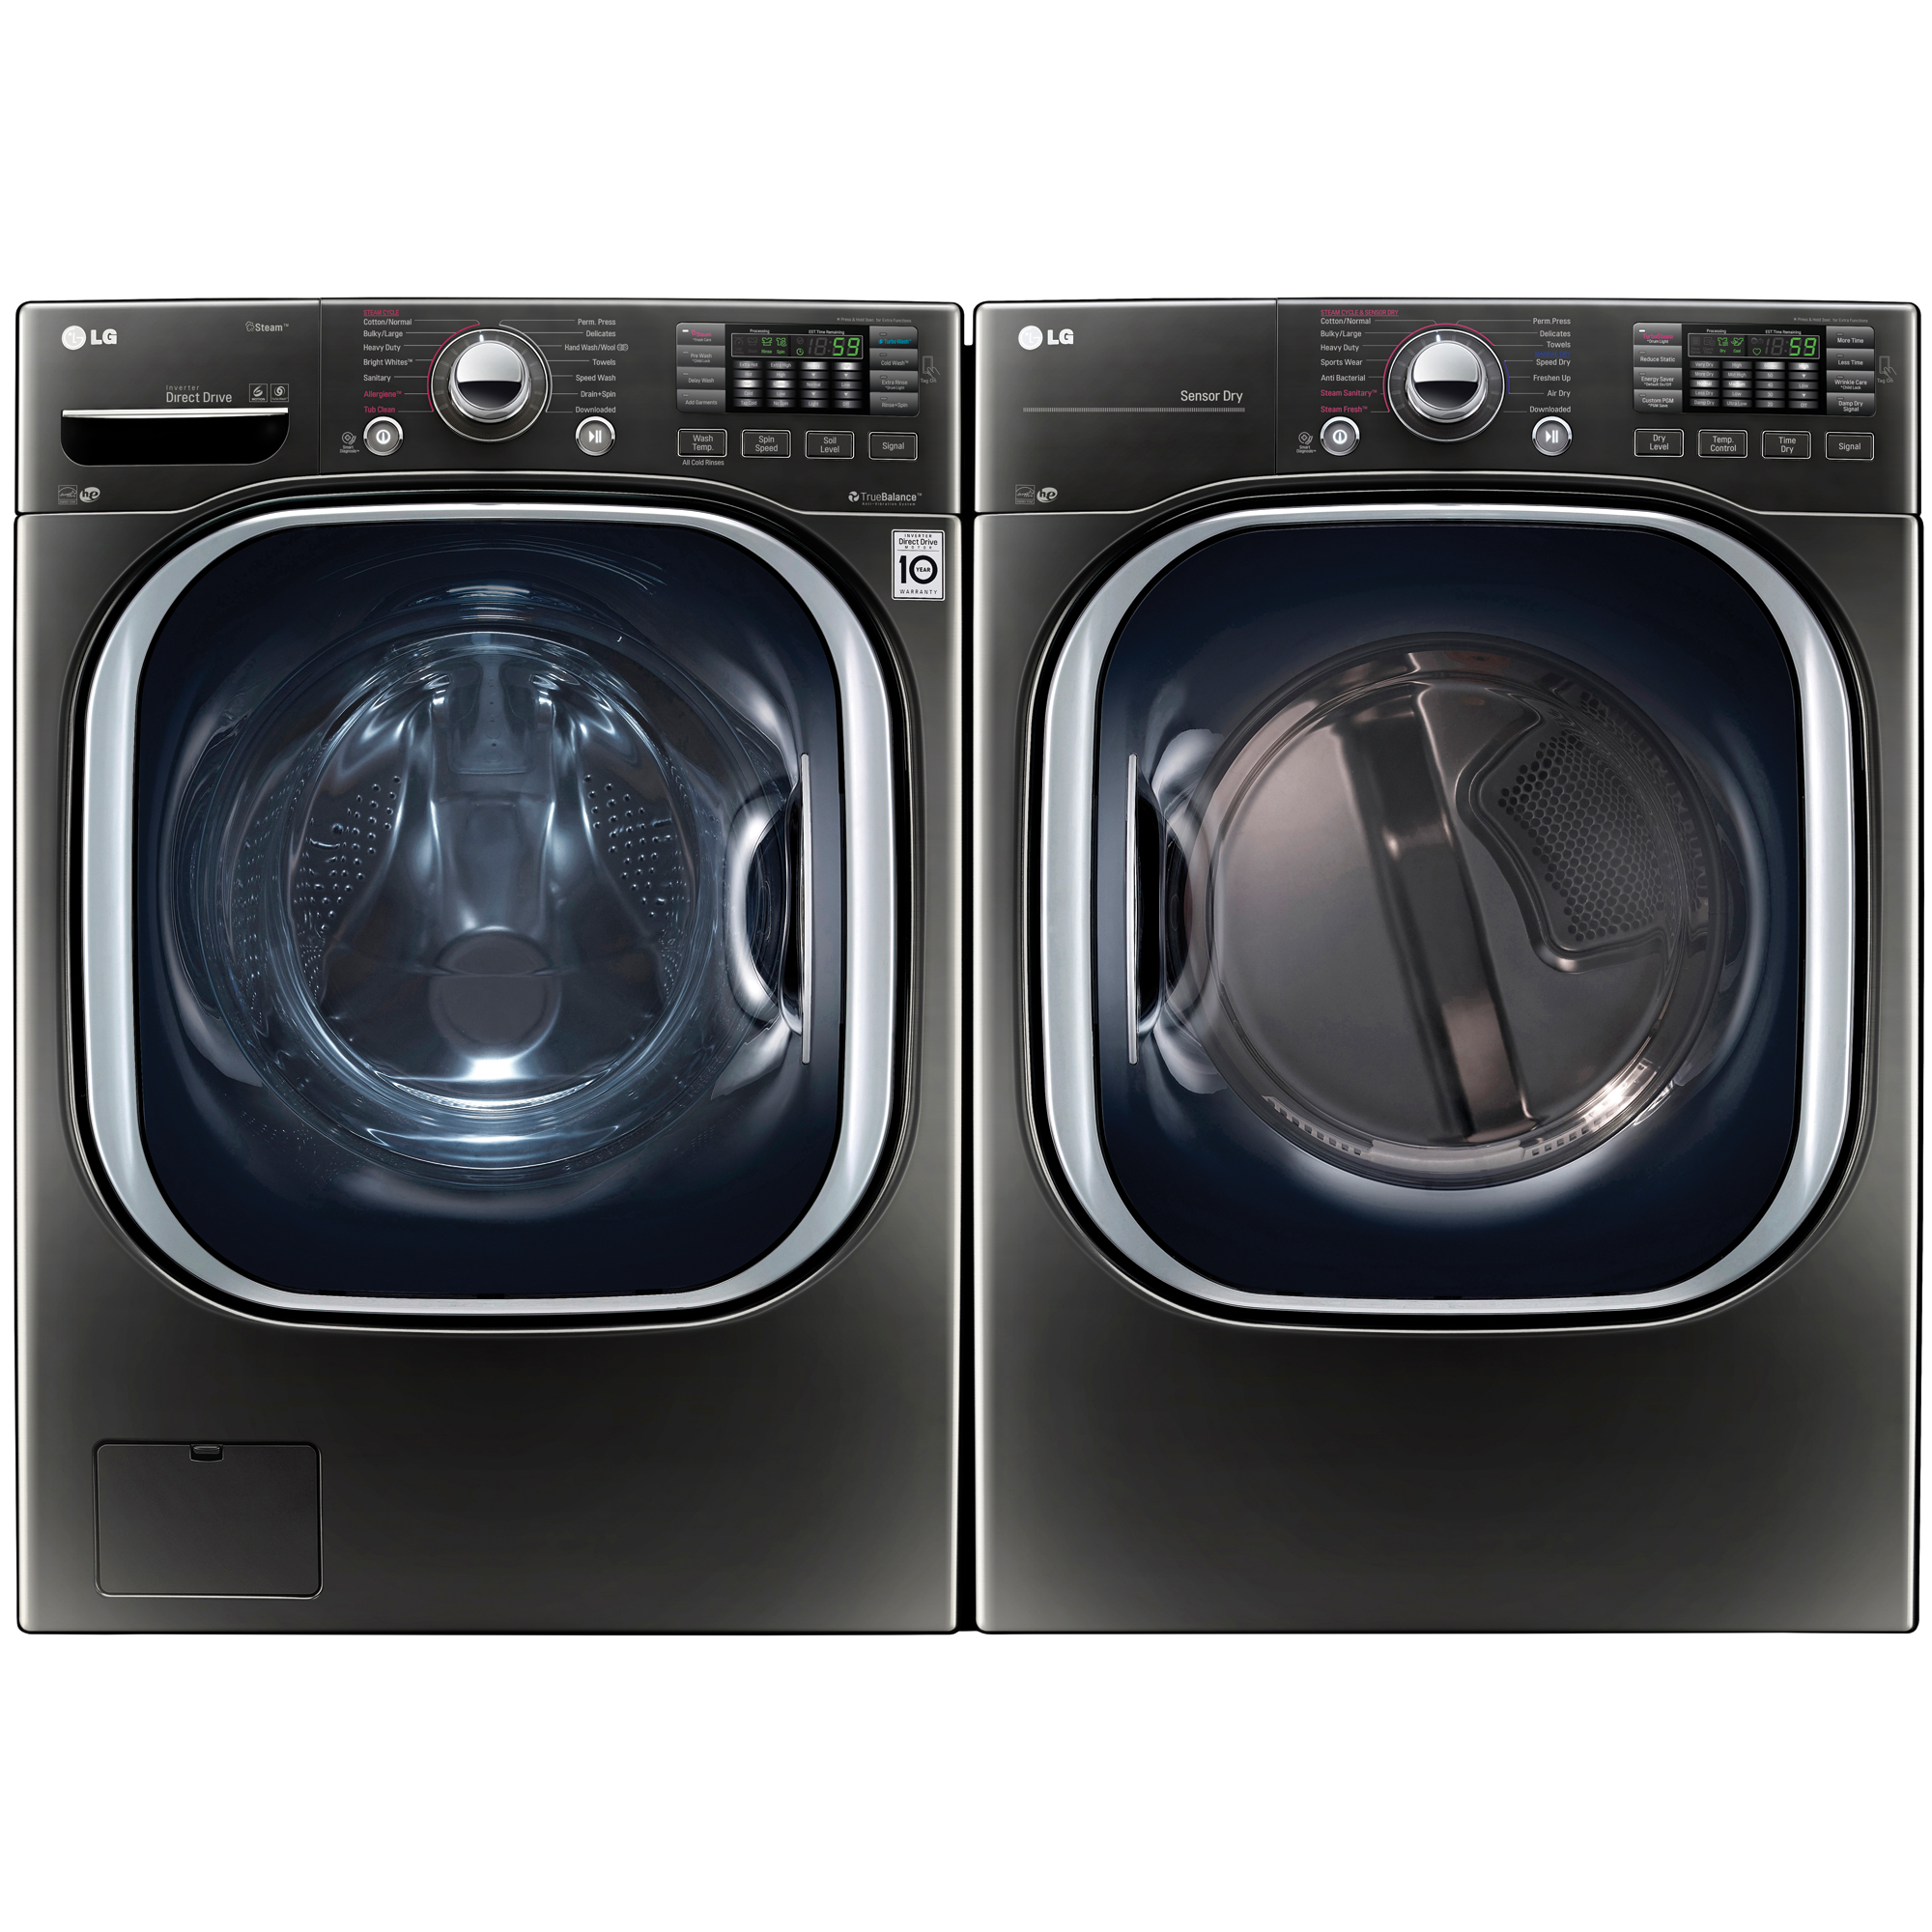 4.5 cu. ft. Front Load Washer w/Steam & 7.4 cu. ft. Dryer w/TurboSteam® Bundle Black Stainless